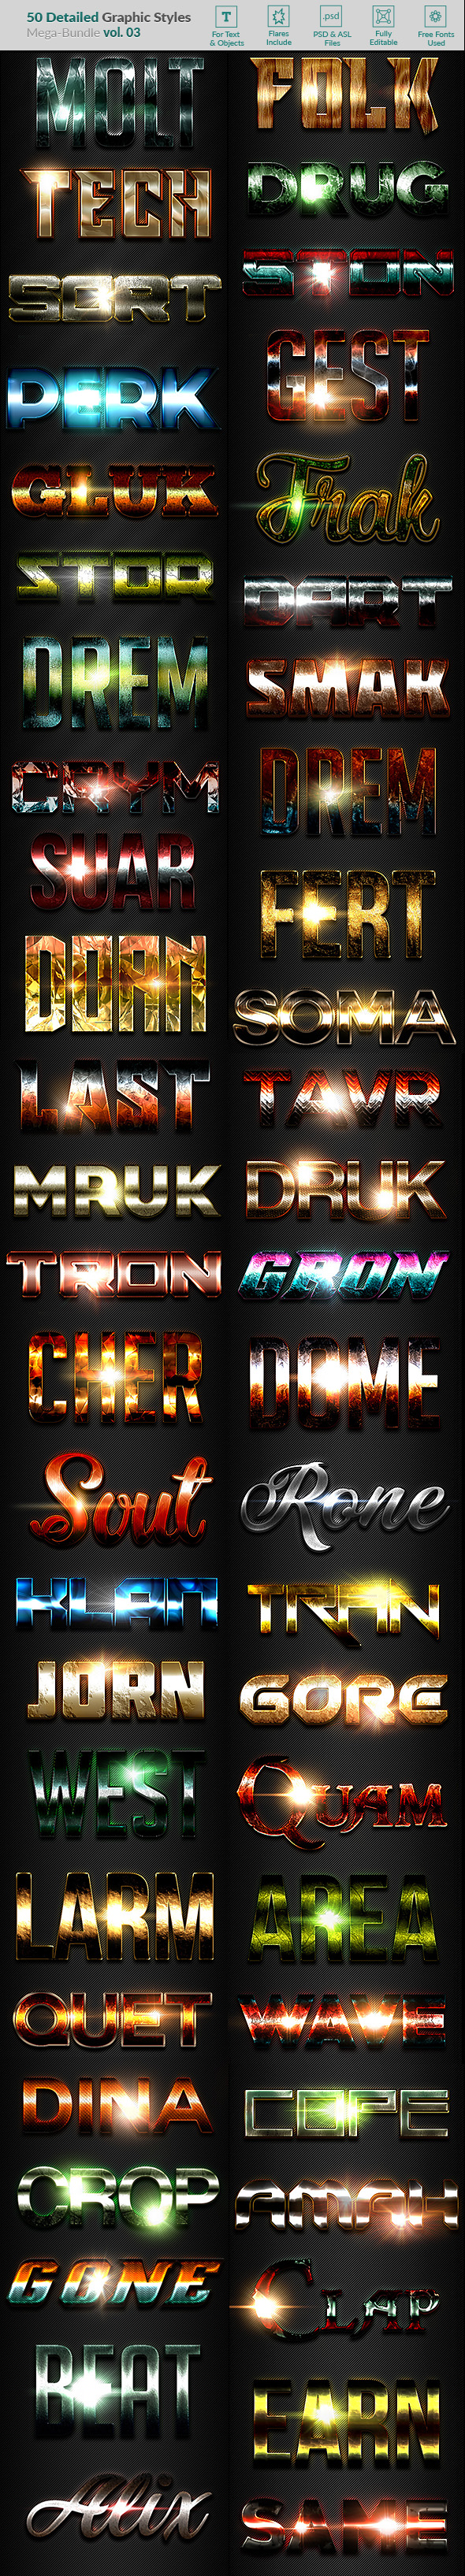 GraphicRiver 50 Text Effects Bundle Vol 03 20909445